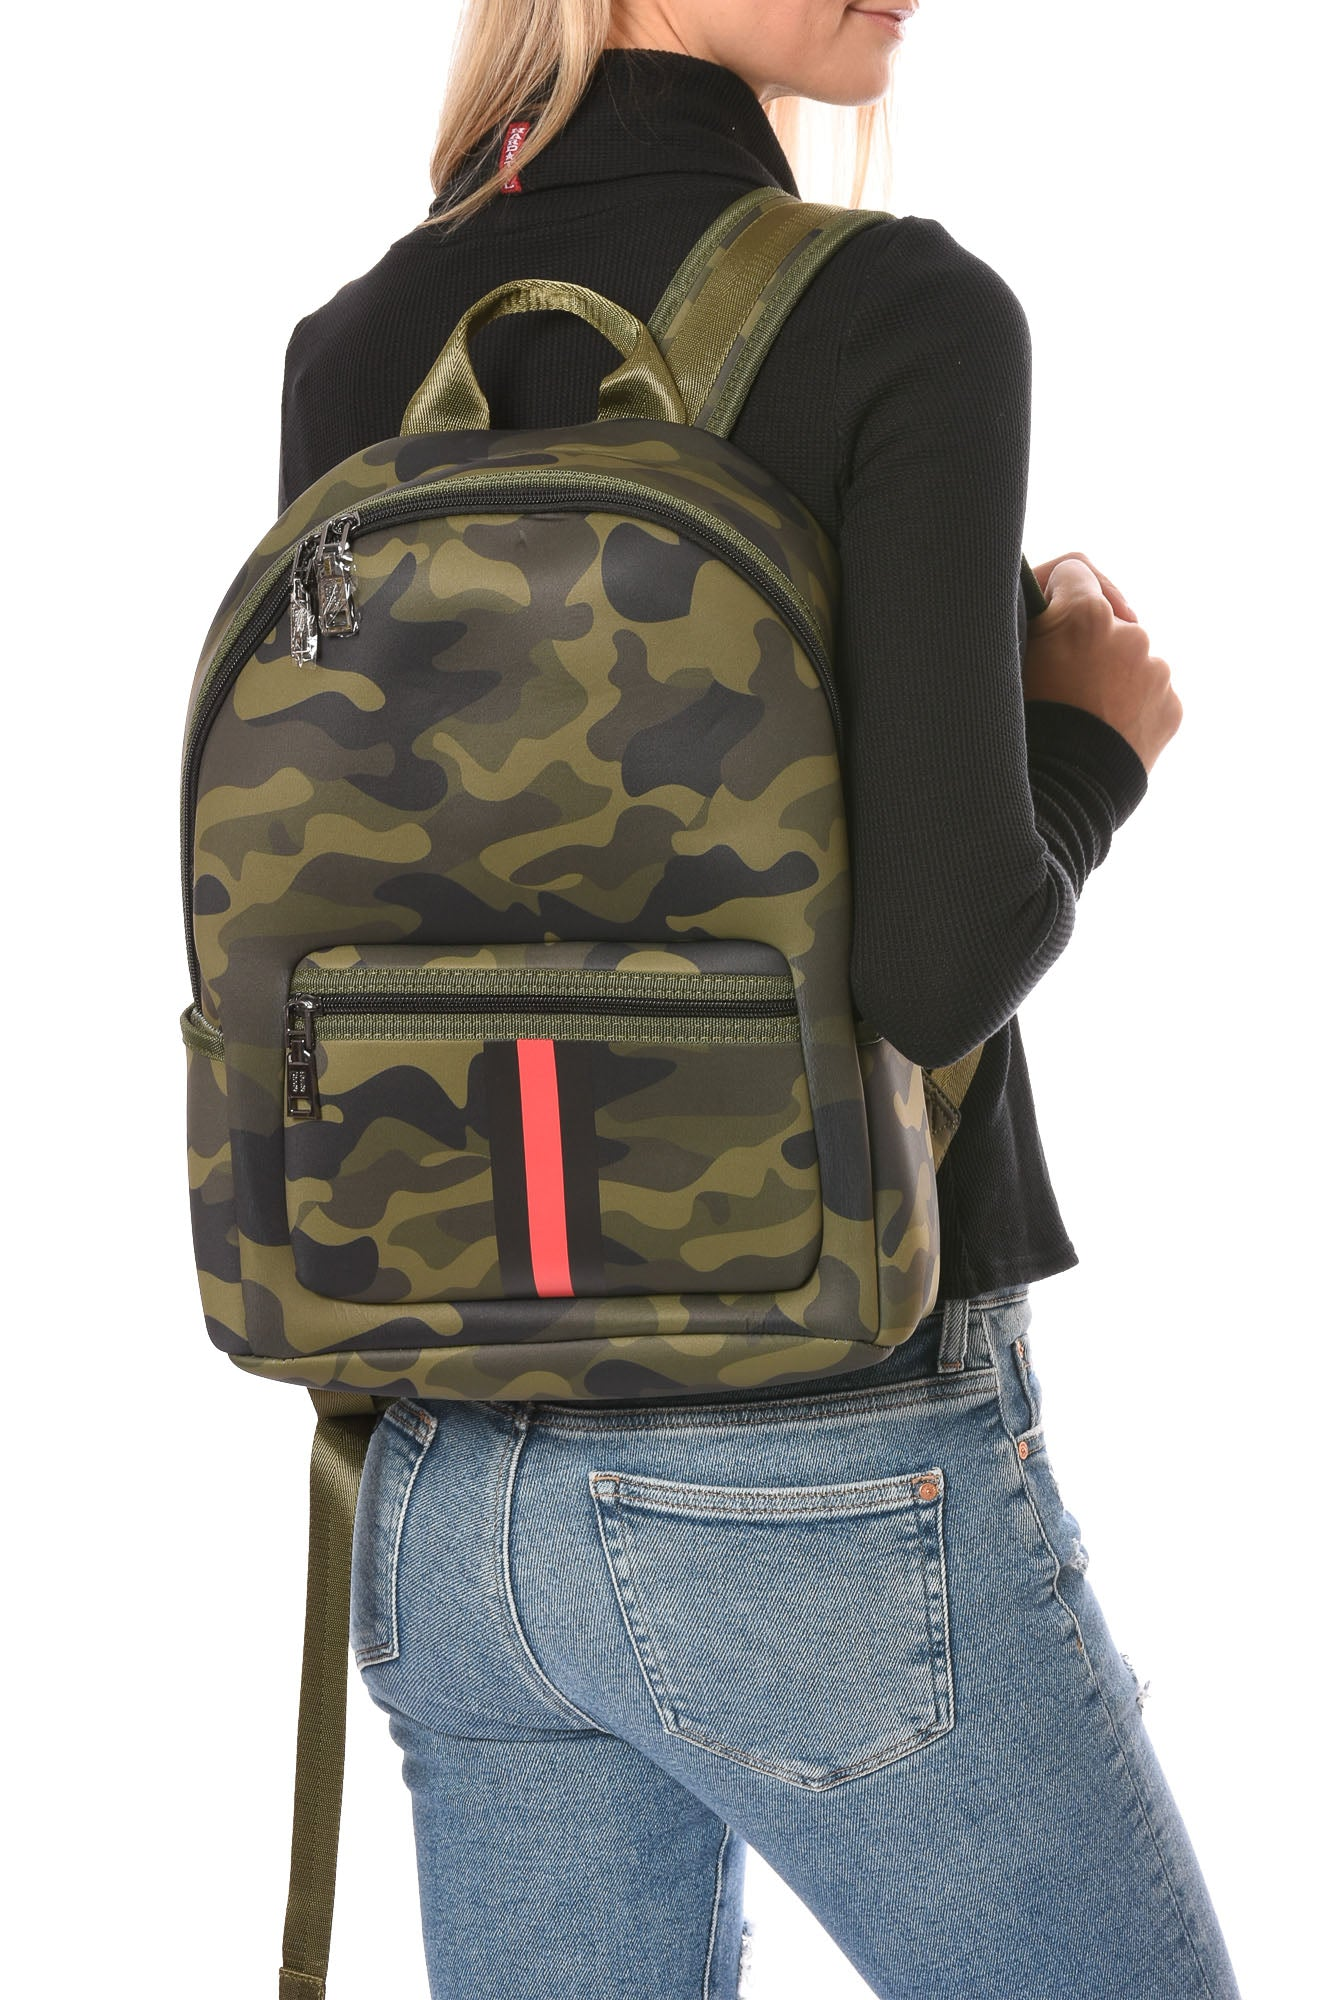 Haute Shore - Alex Backpack (alex, Green Camo w/Red & Black Sripe)